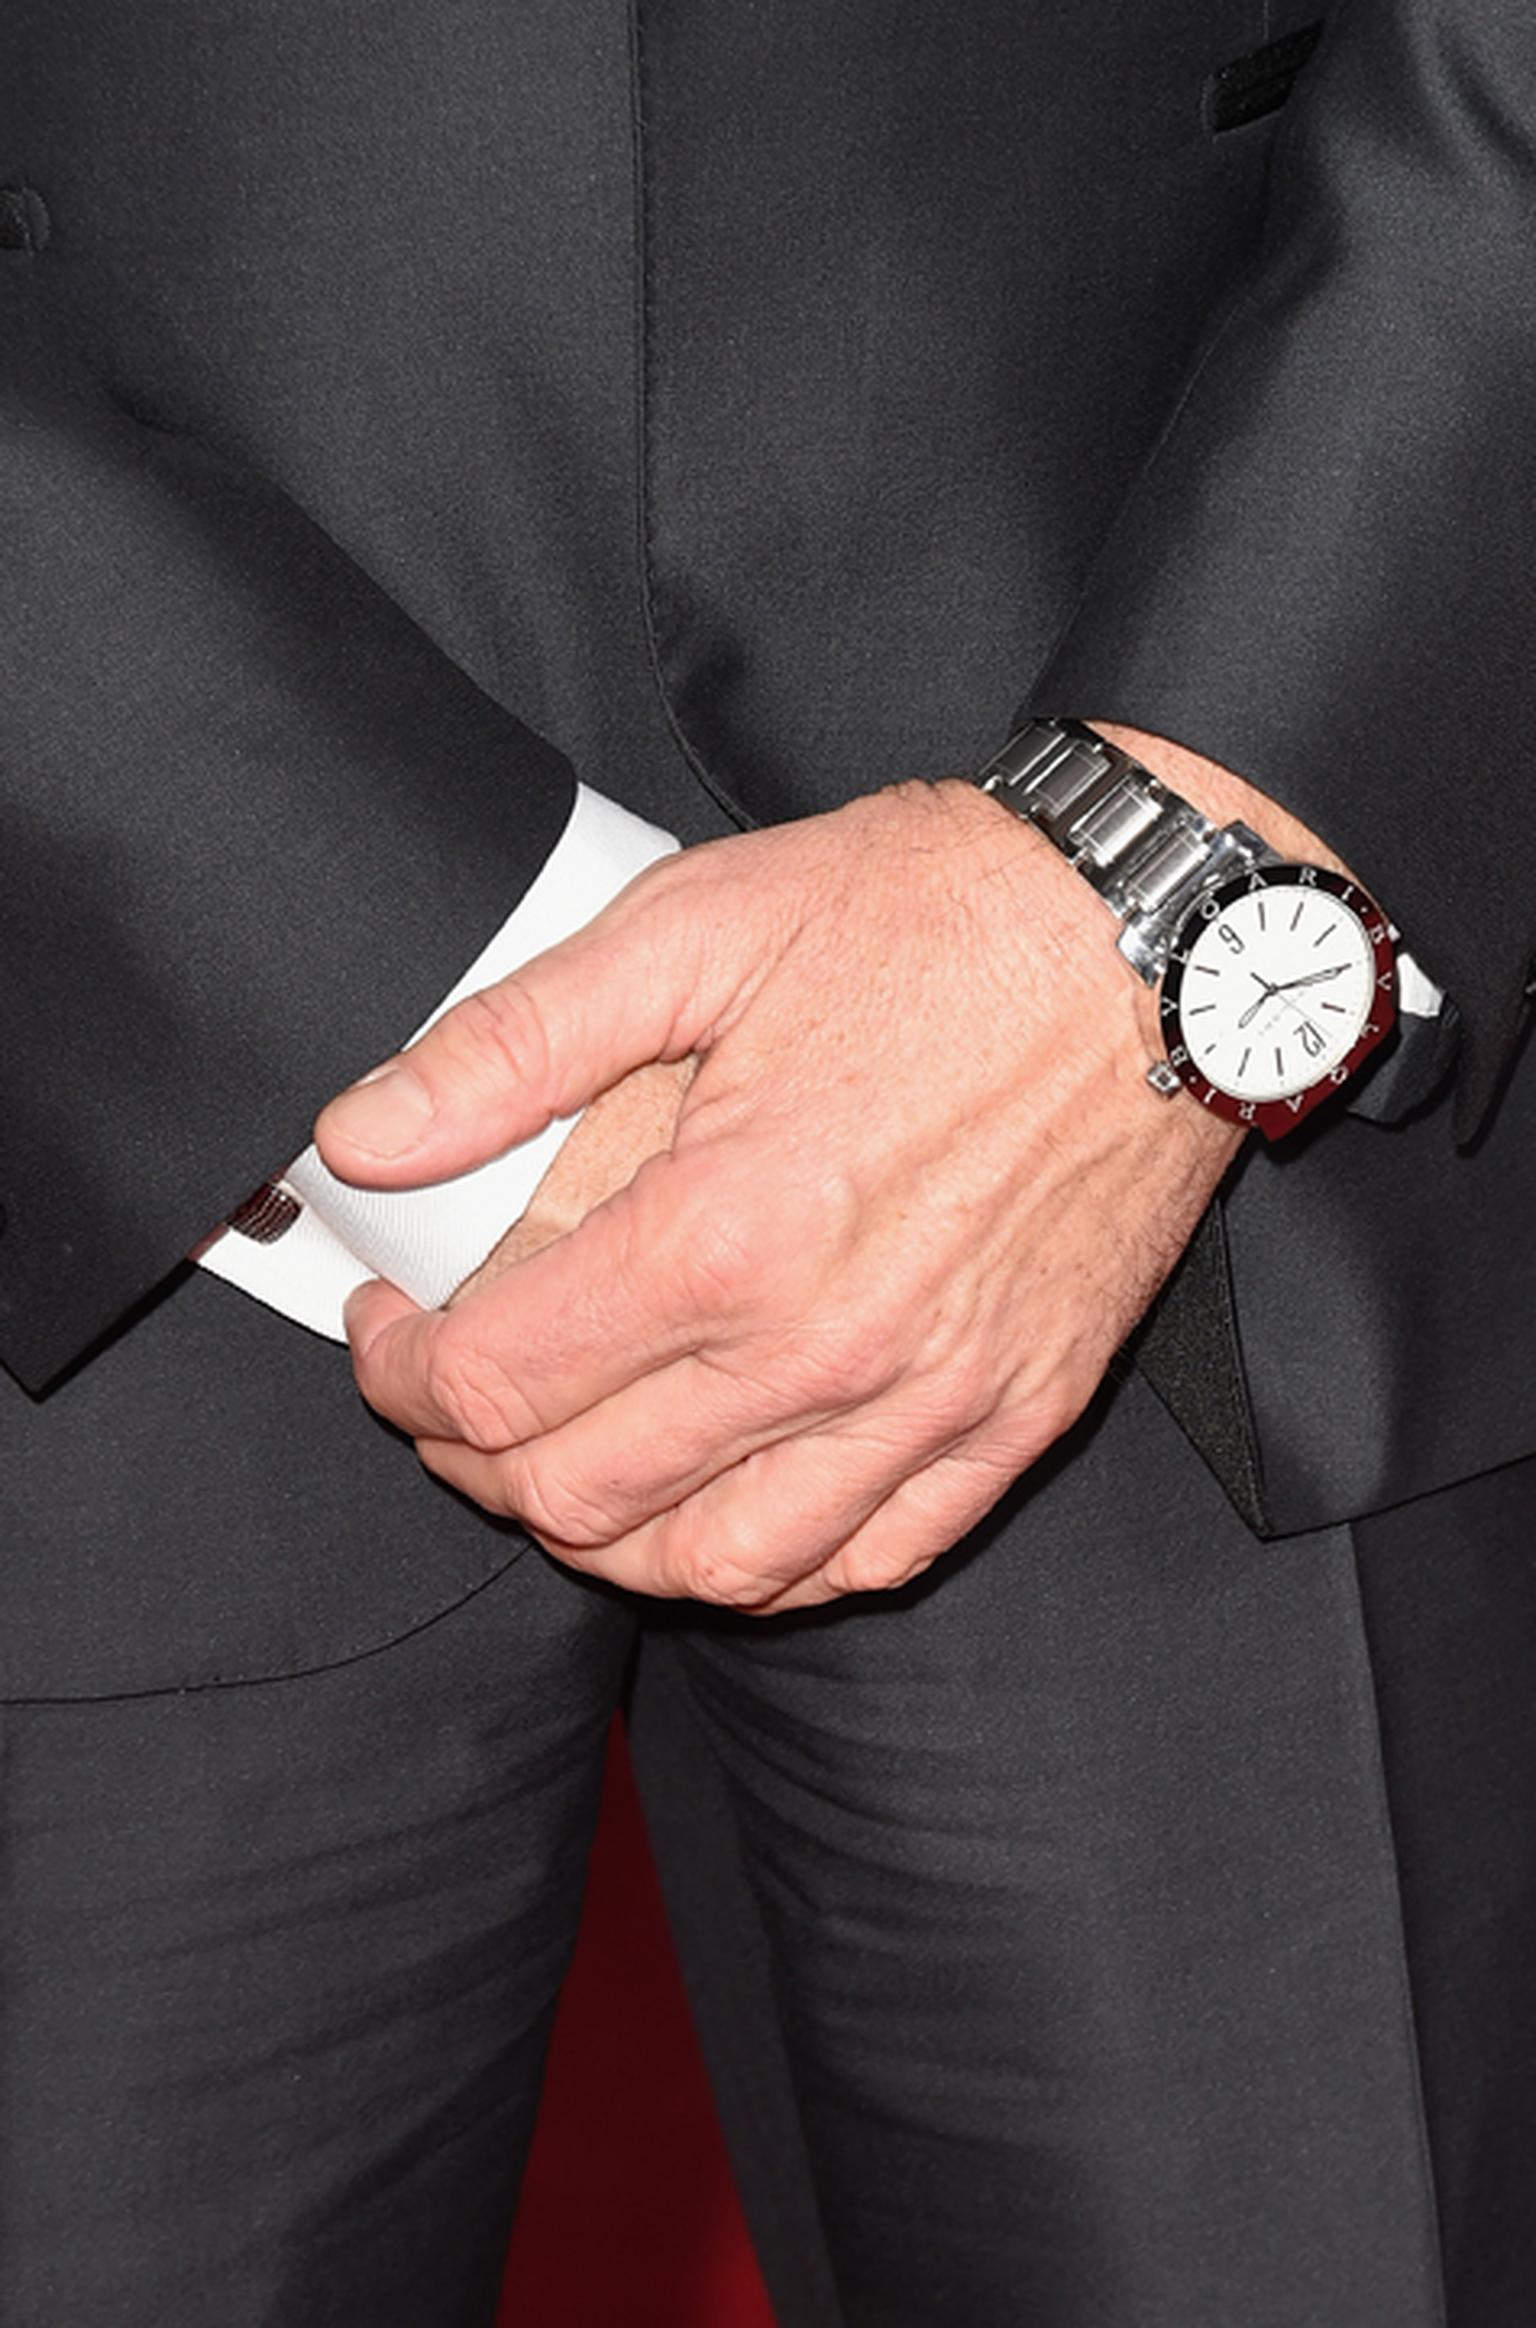 Michael Keaton wearing the Bulgari Bulgari Solotempo watch. This Solotempo model comes in a 41mm stainless steel case and has hours, minutes, central seconds and a date window with a white lacquered dial. (Getty Images)